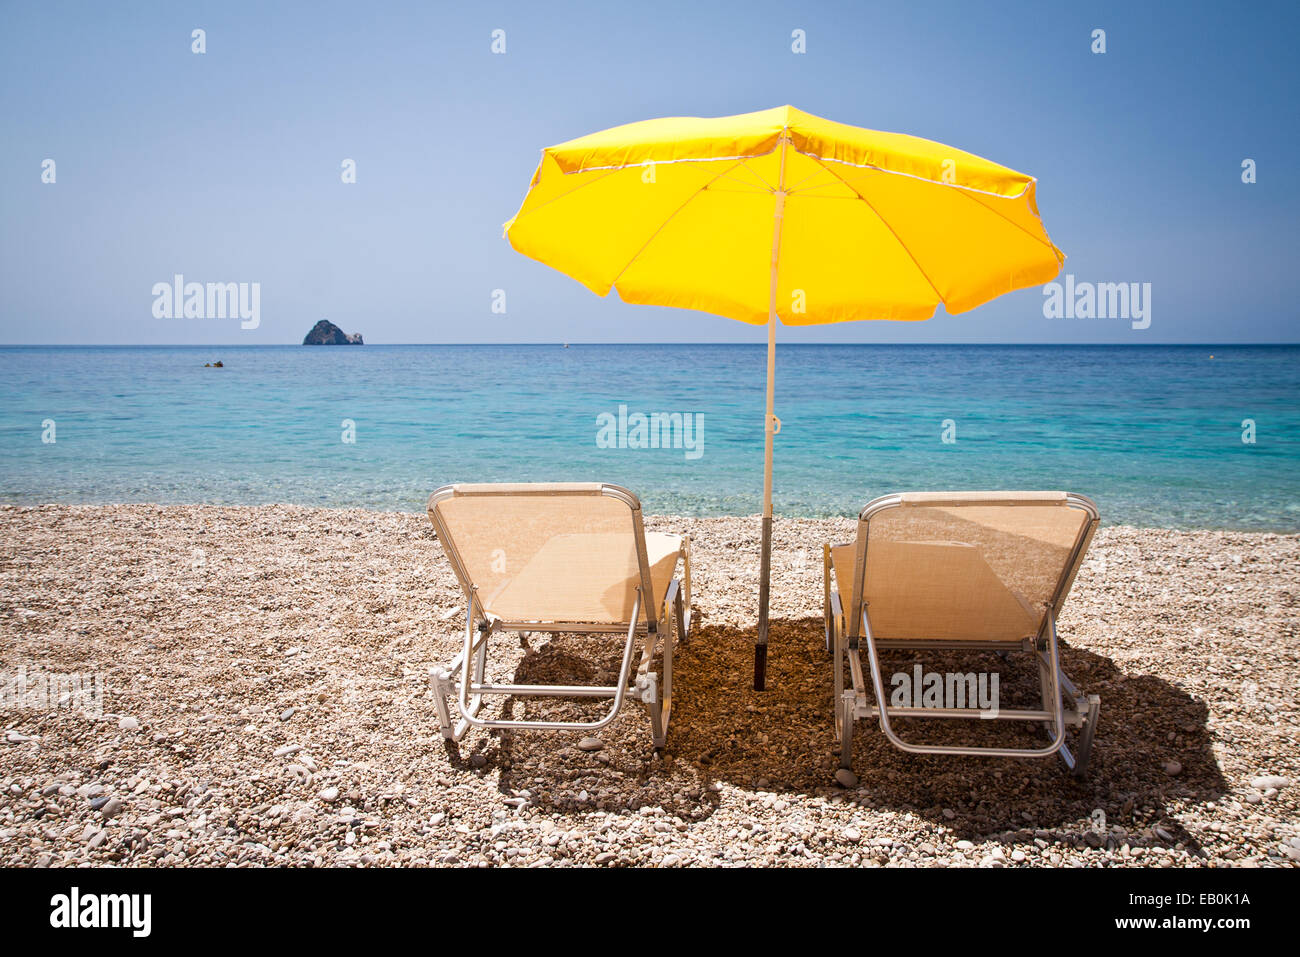 Sun loungers and parasol on the beach - Stock Image